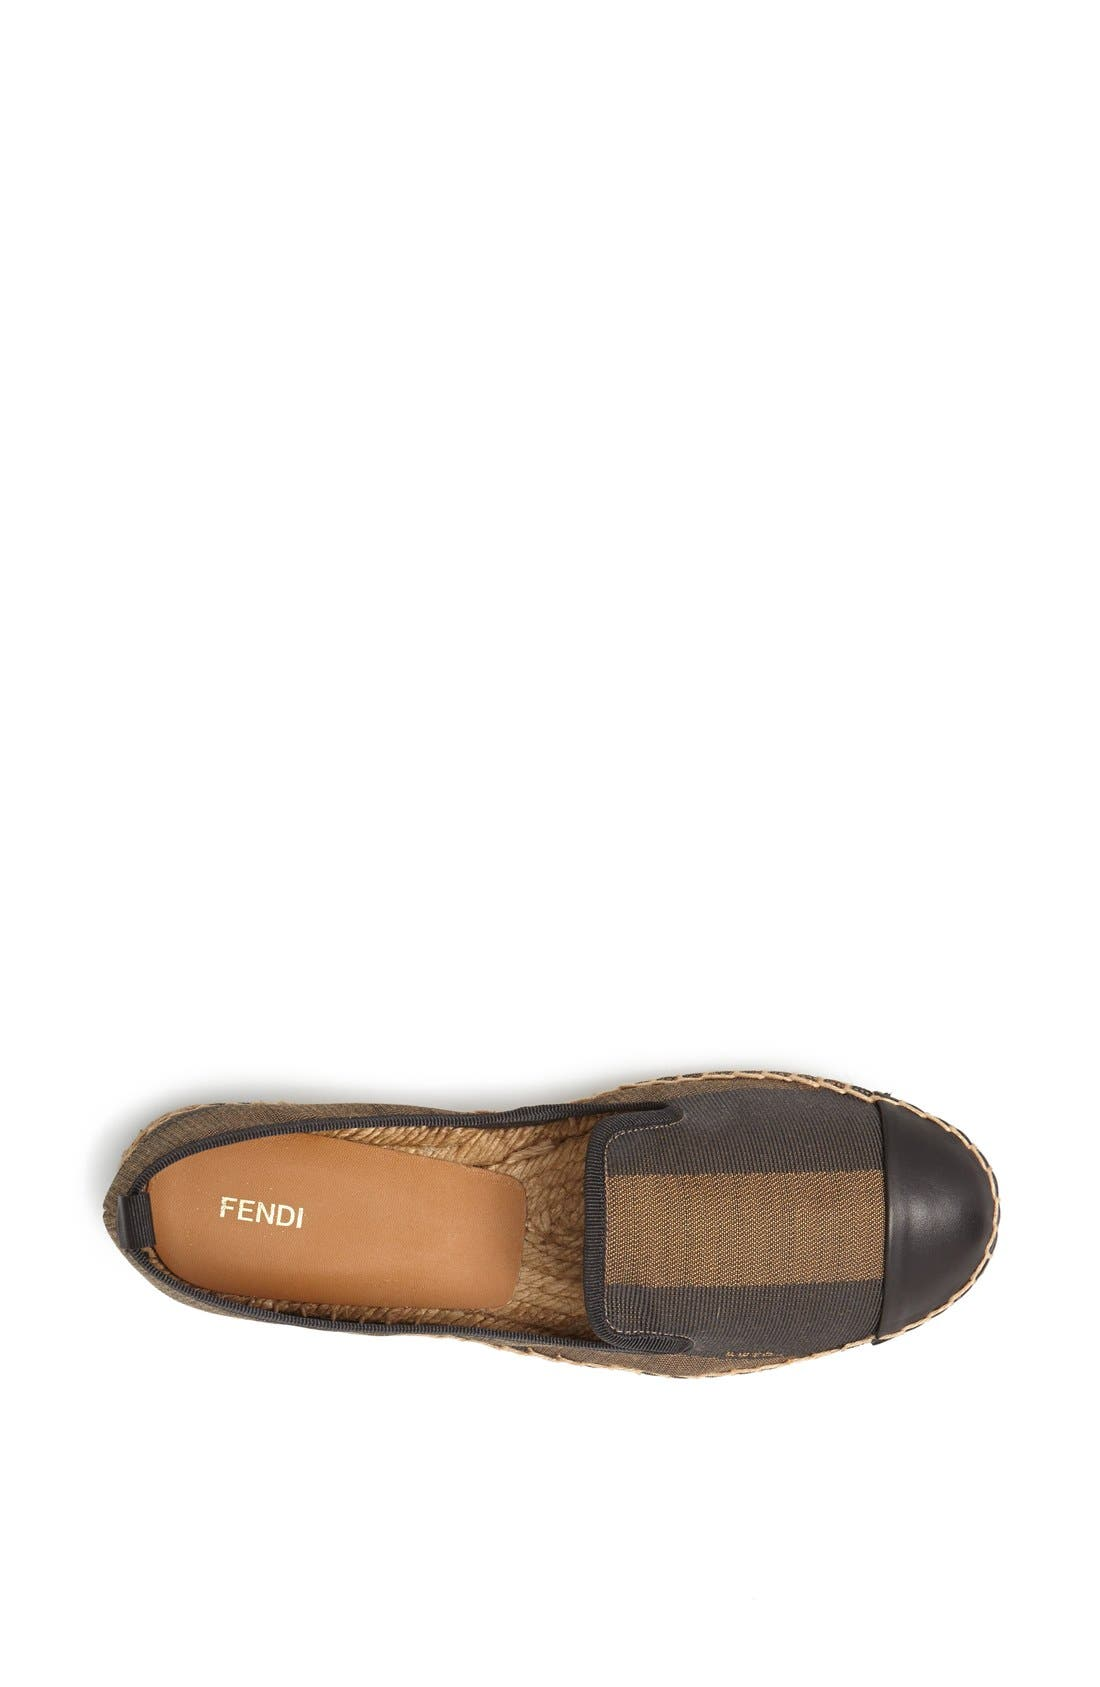 Alternate Image 3  - Fendi 'Junia' Espadrille Flat (Women)